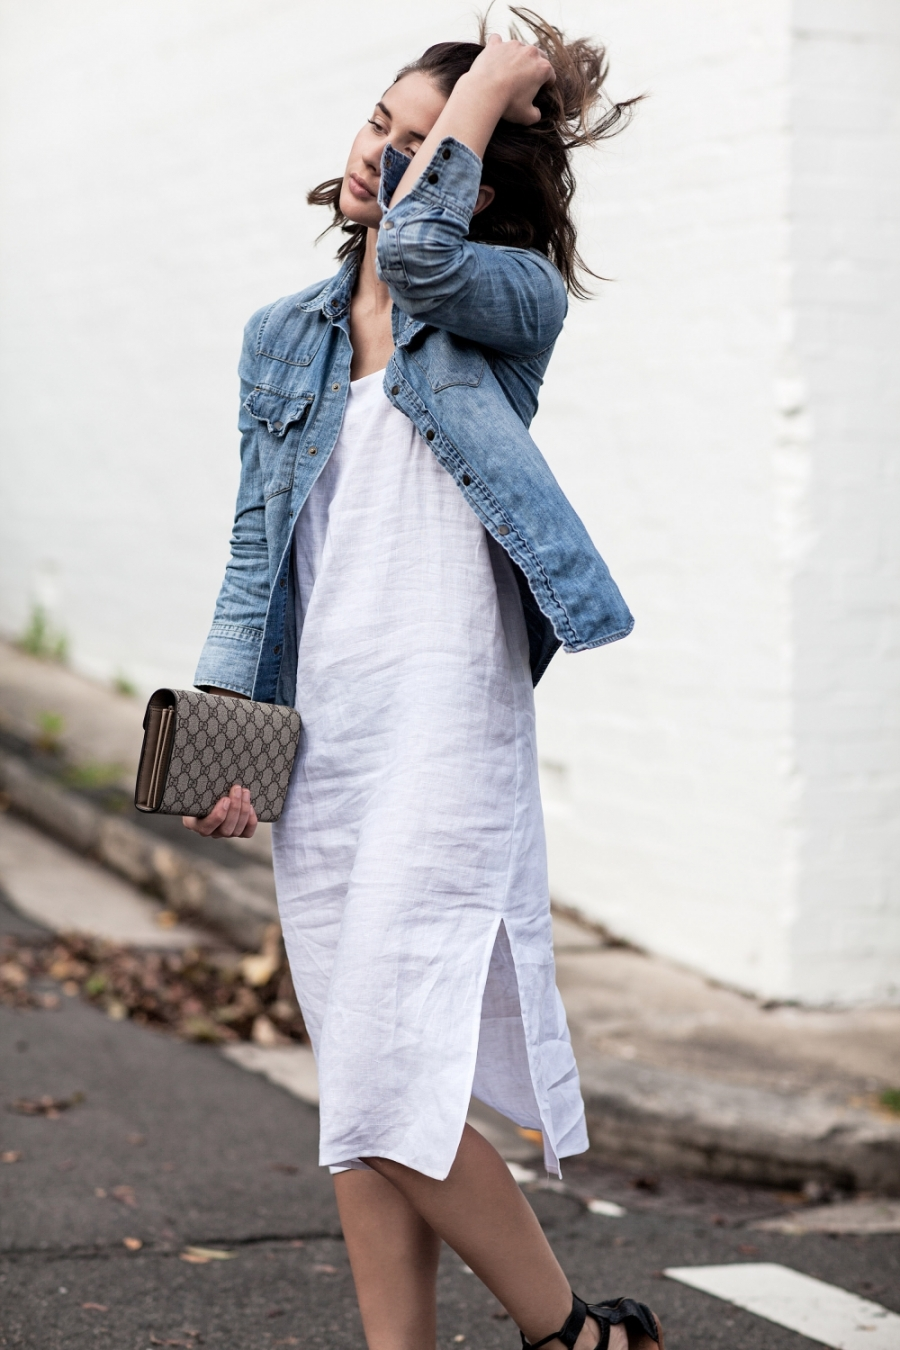 ROSE & IVY Journal The Prettiest Linen Pieces to Wear Now